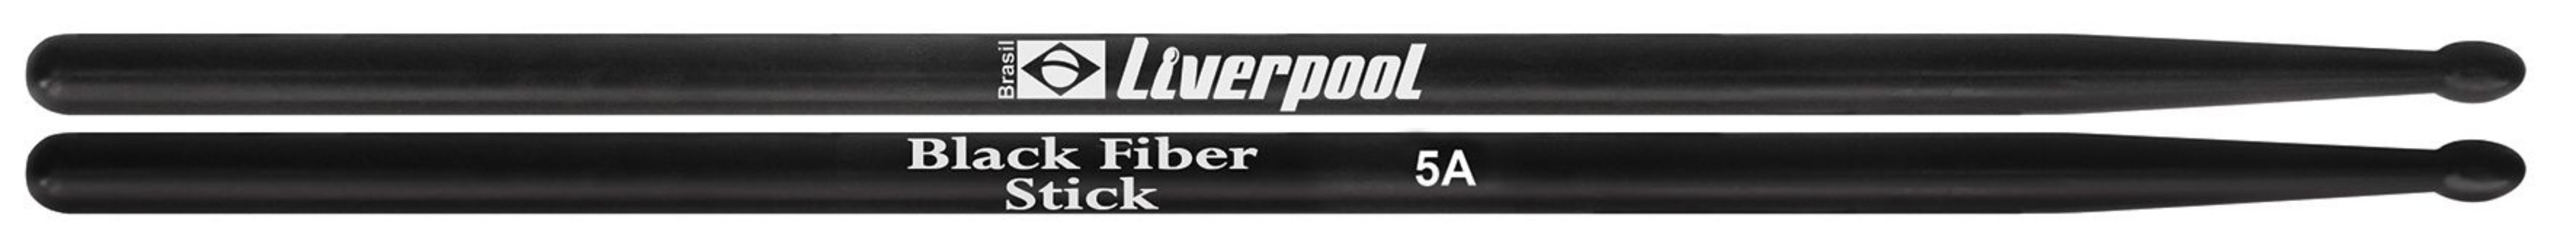 Liverpool Baquetas Black Fiber Stick 5A BFS5AM